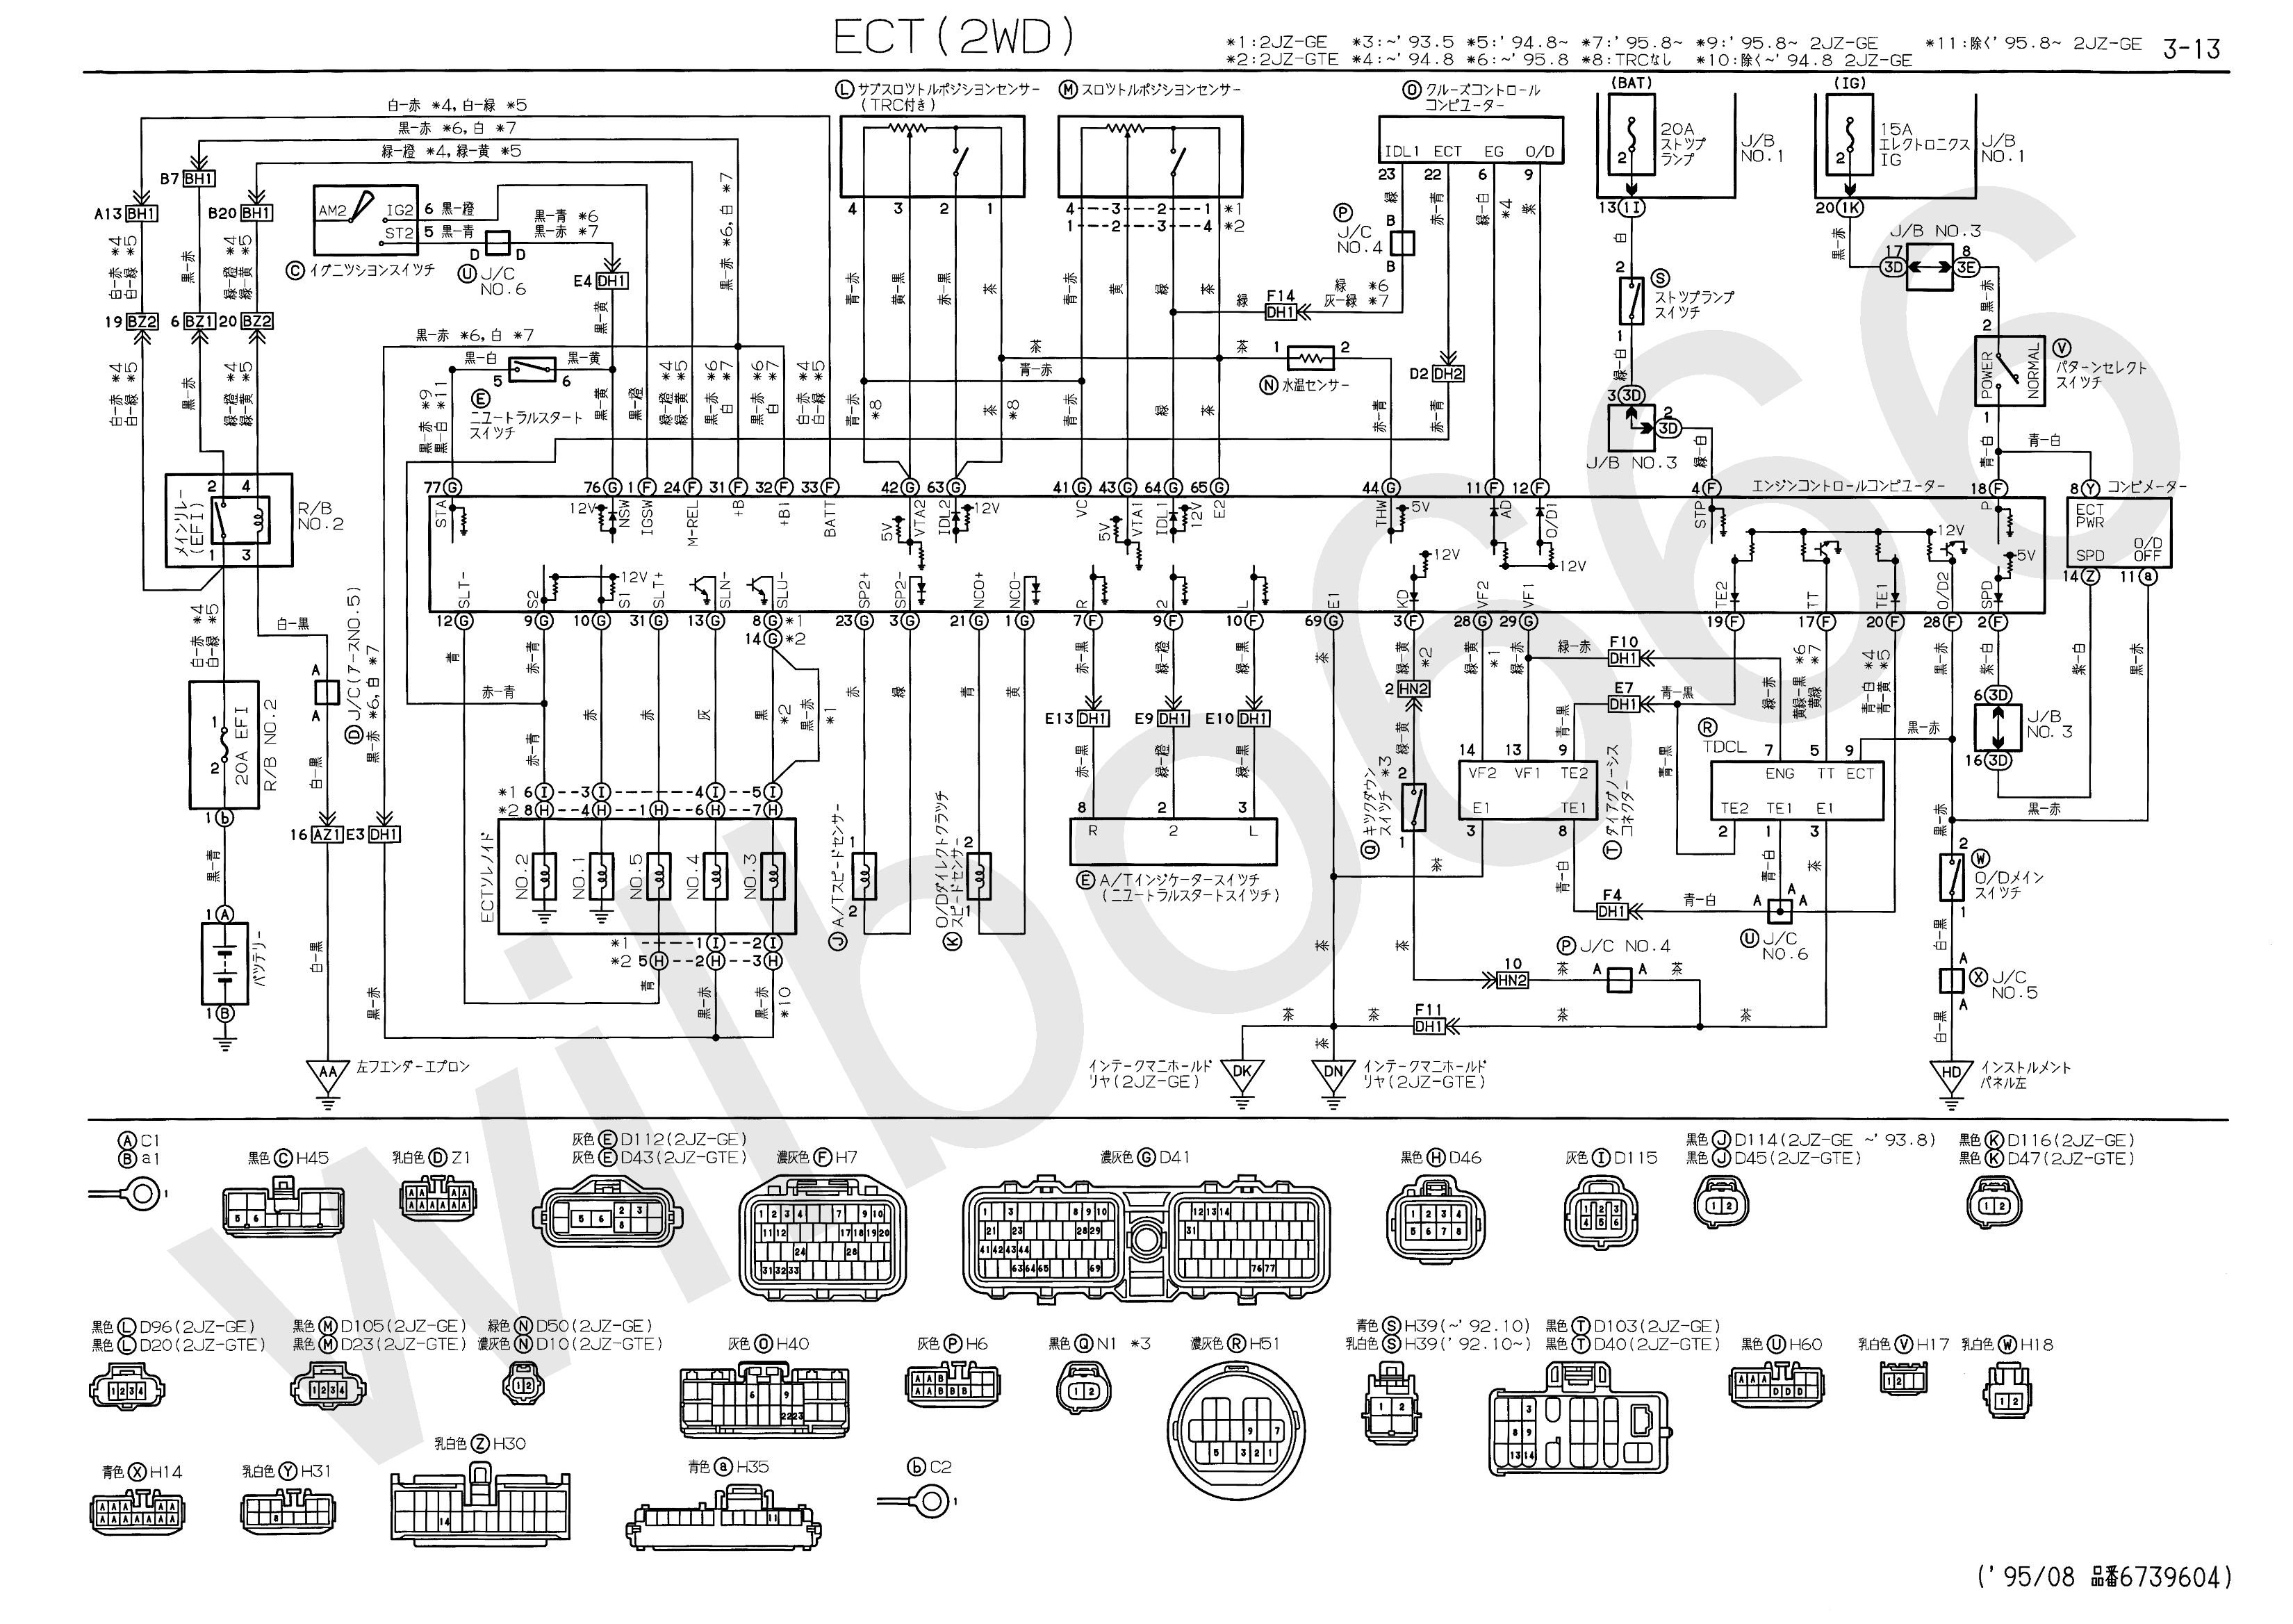 ge low voltage wiring diagram ge discover your wiring diagram 2jz ge 20jza80 20supra 20engine 20wiring pendant light wiring diagrams also ge rr7 low voltage relay